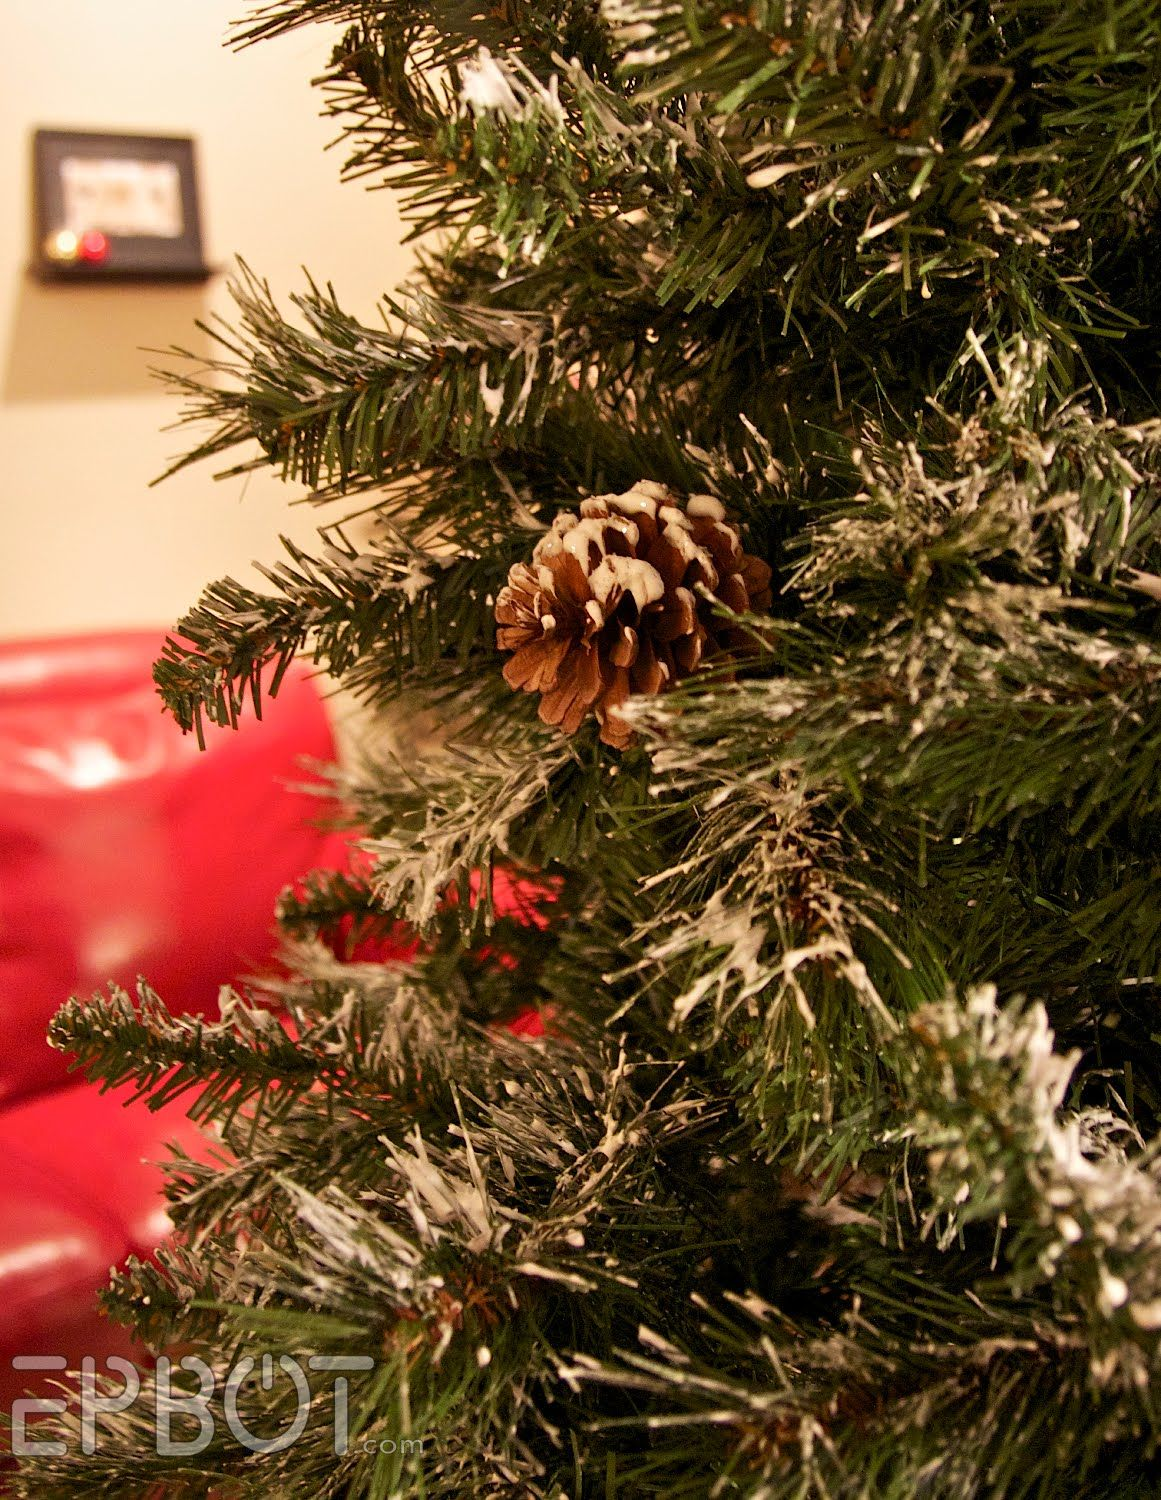 diy flockingfake snow for your christmas tree using lightweight drywall spackle